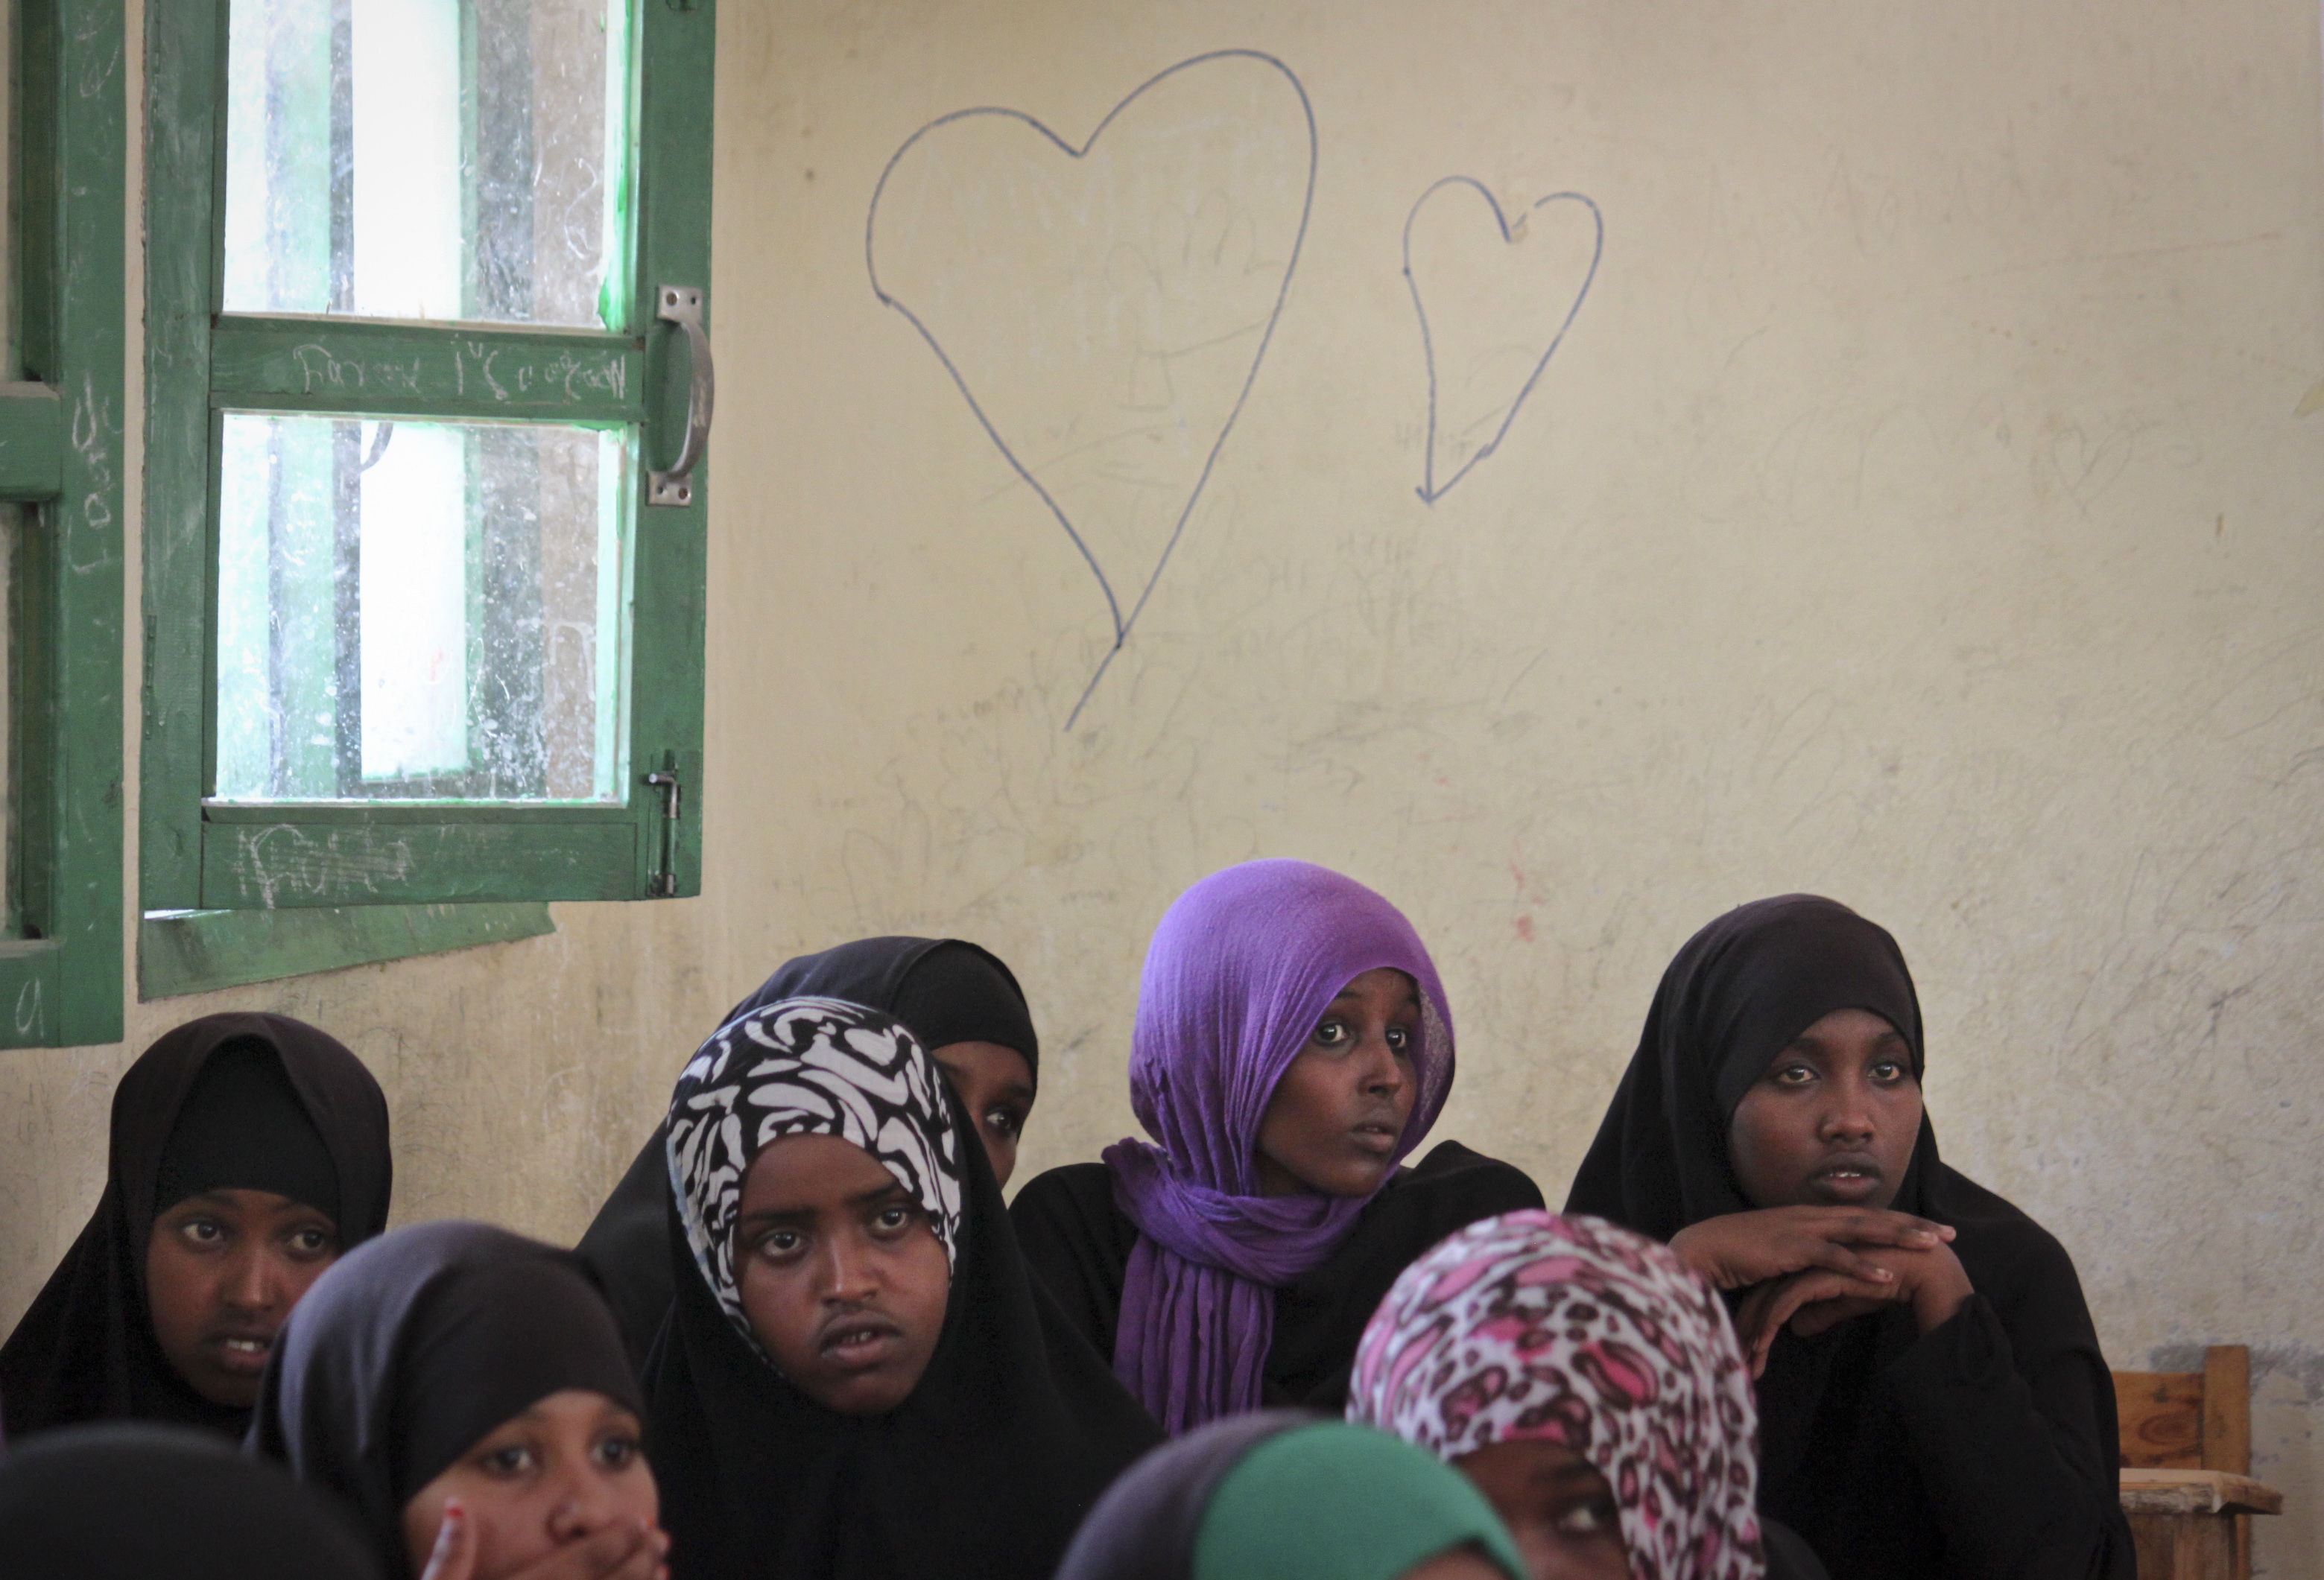 Discussion of the practice of female genital mutilation, funded by UNICEF, at the Sheik Nuur Primary School in Hargeisa, Somalila on Feb. 16, 2014.